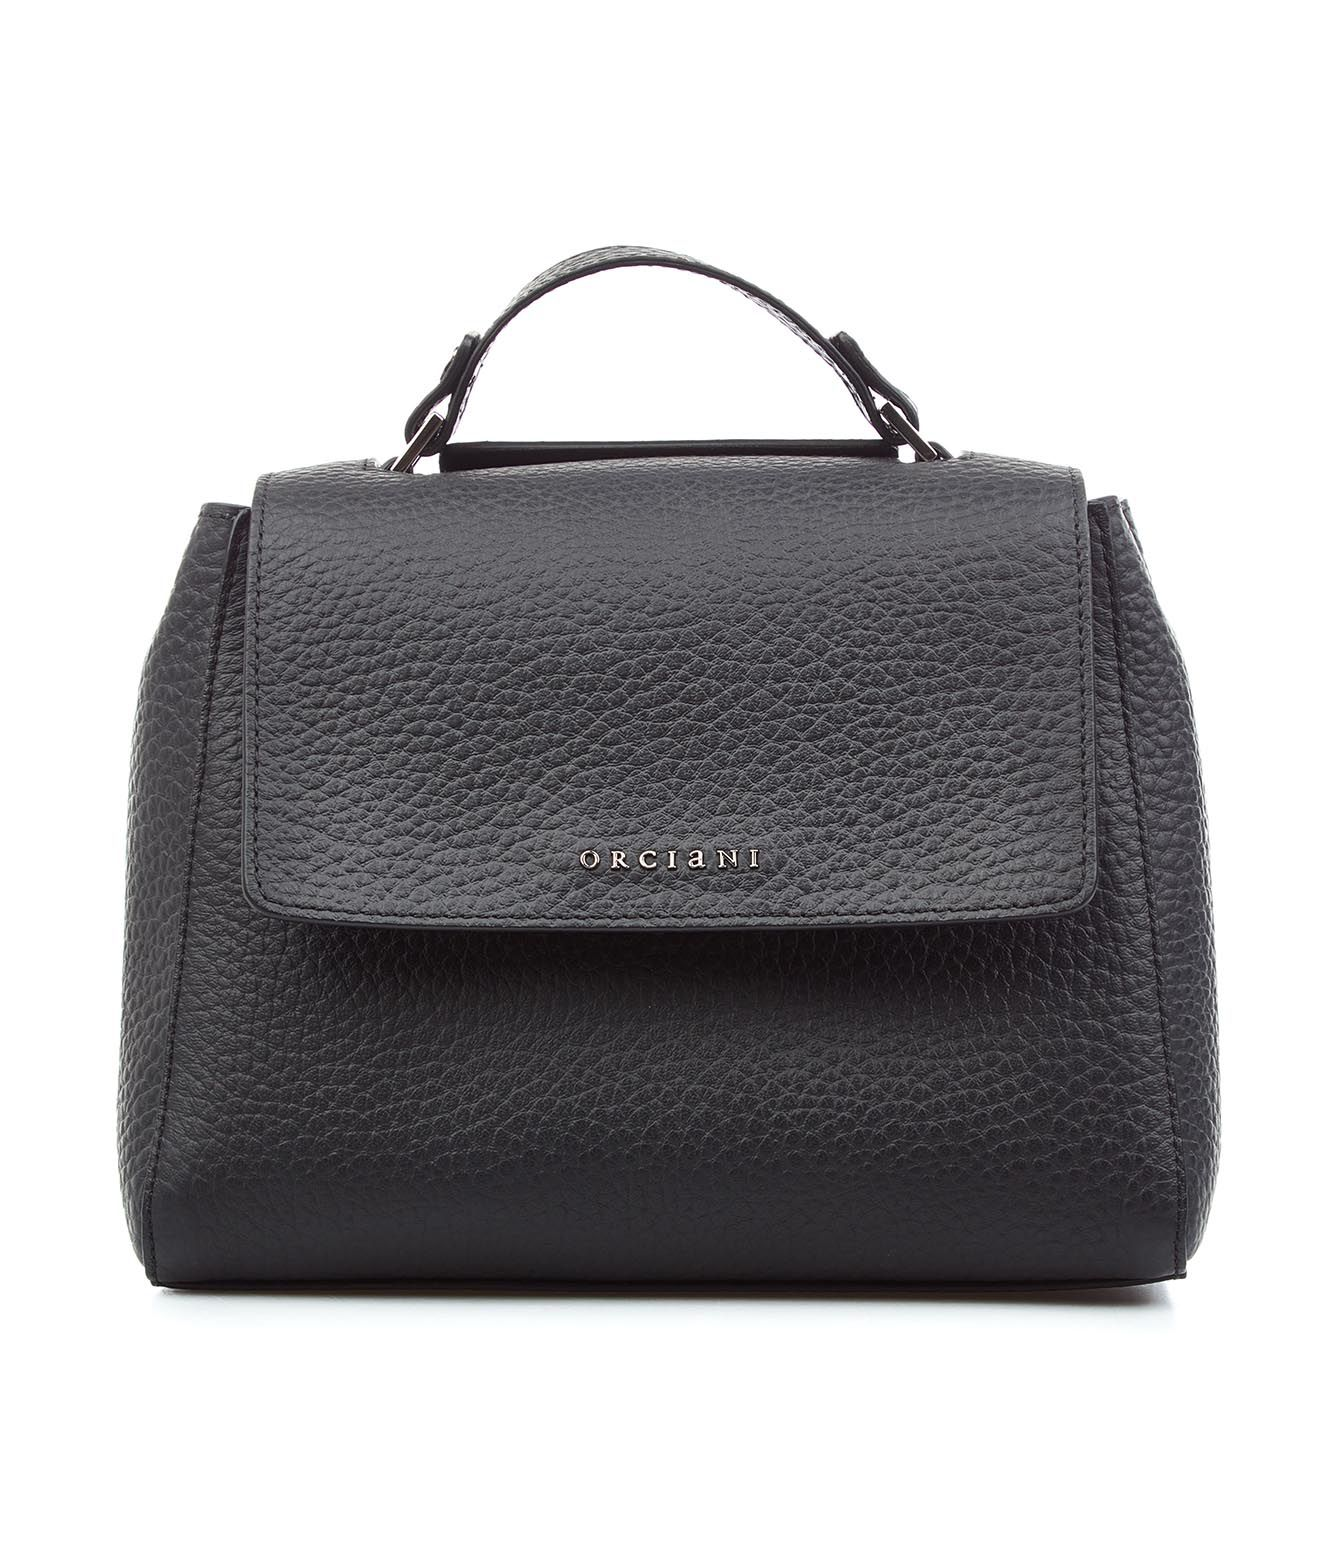 Orciani Mini Handbag Nappa Leather In Nero